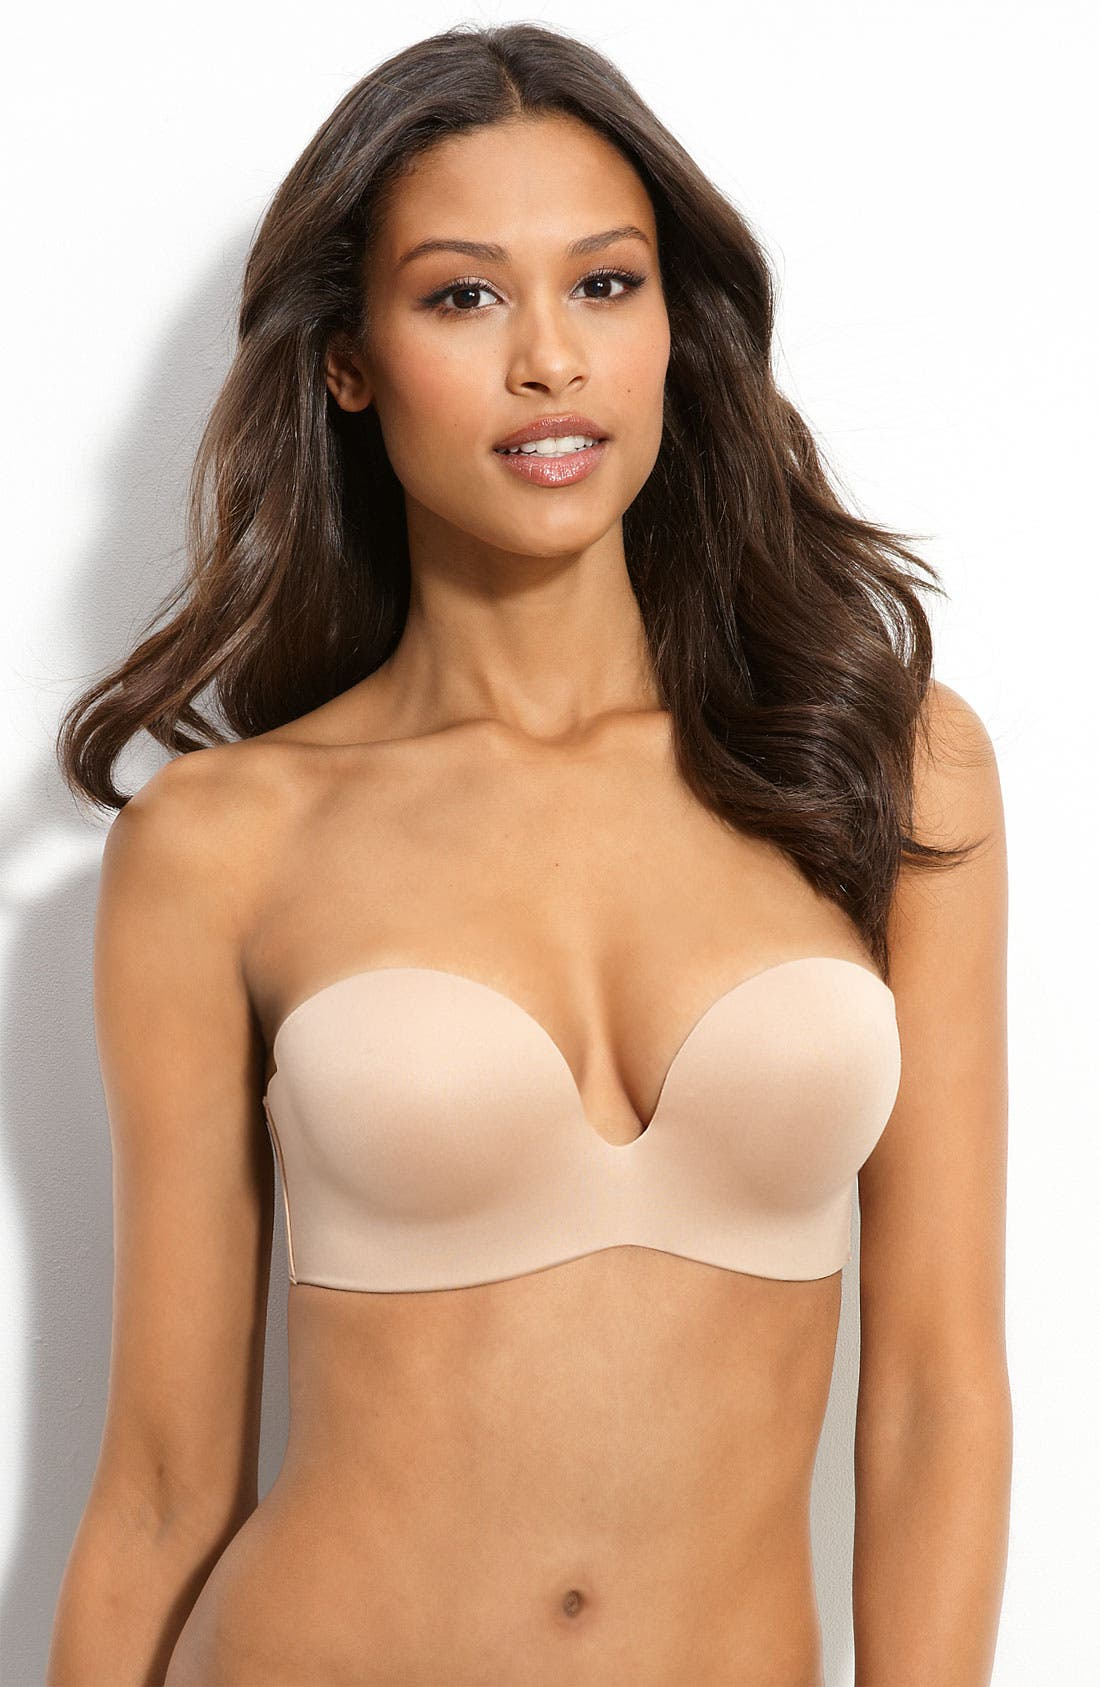 Nordstrom Intimates 'Super Boost' Backless Underwire Bra ...